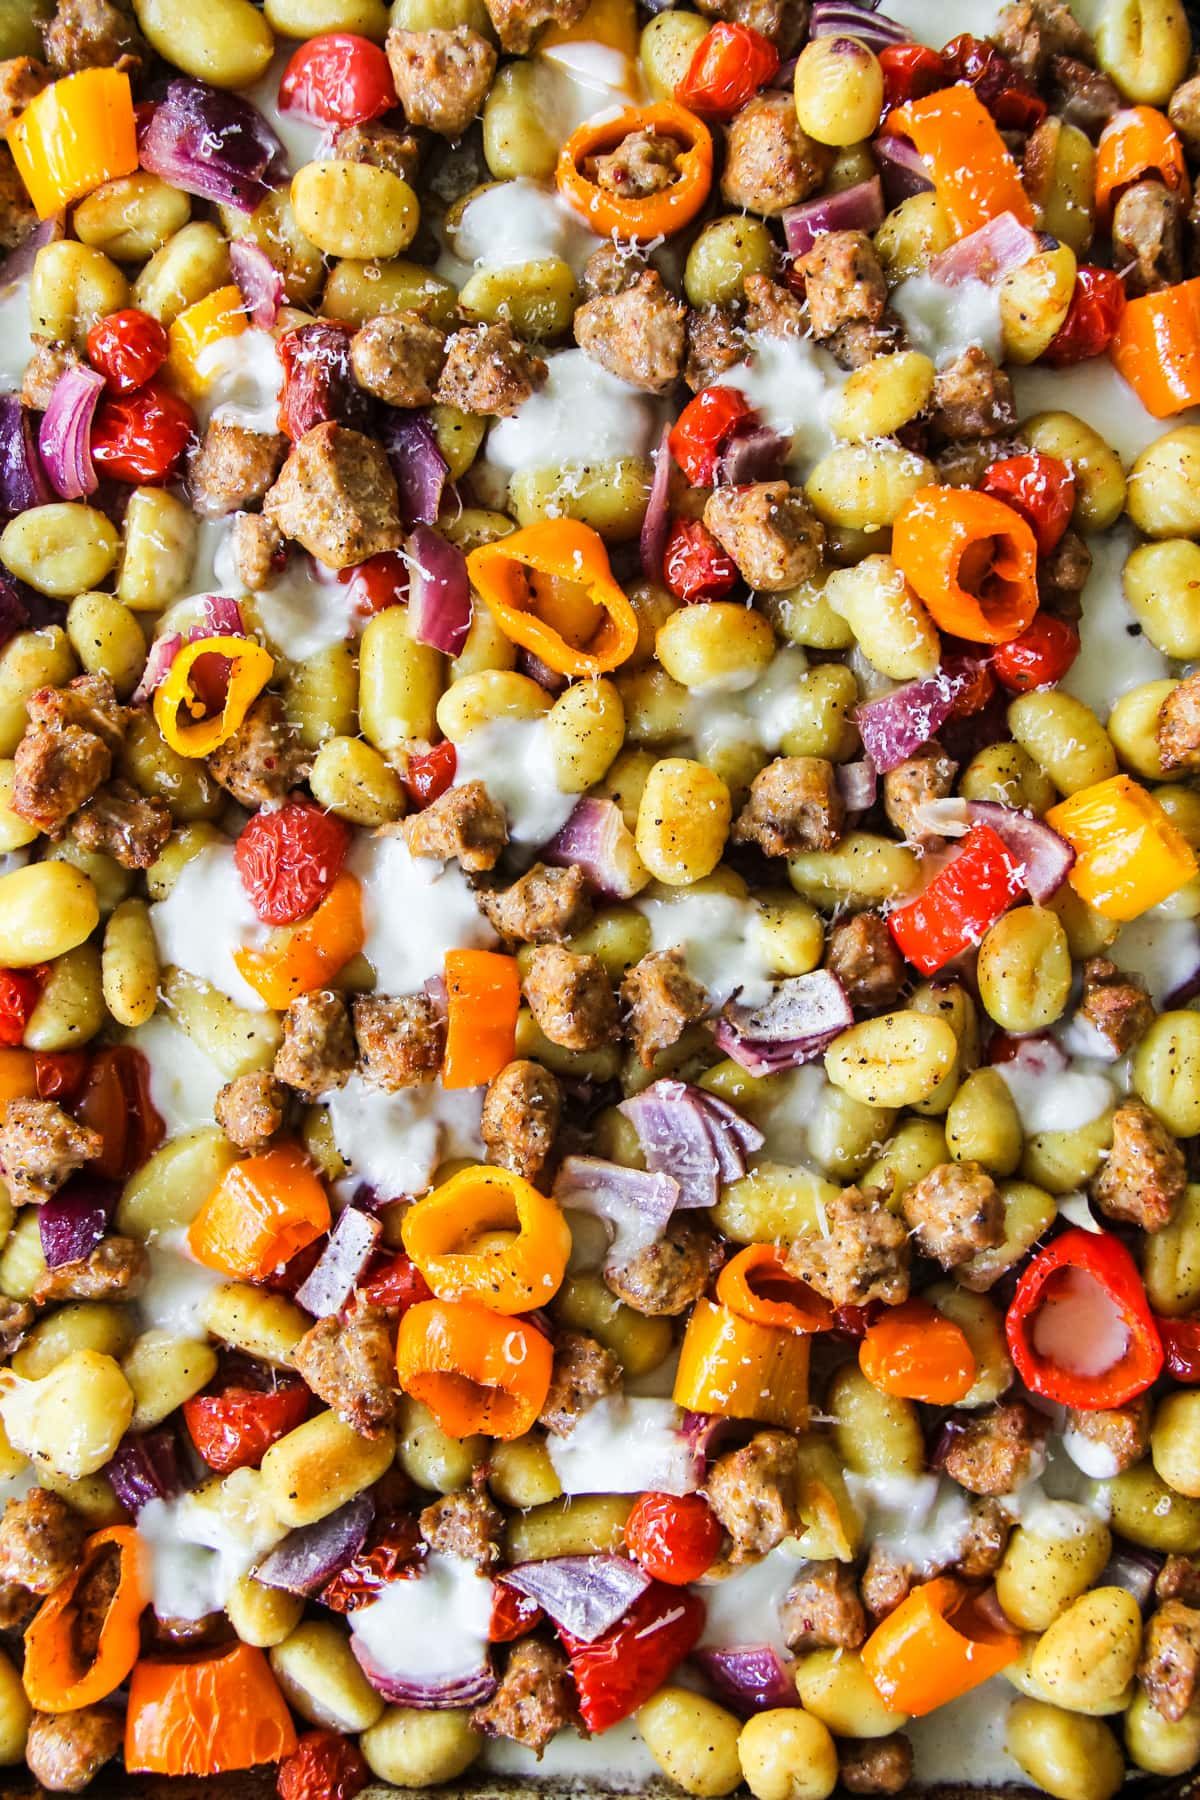 a top down view of a baking sheet filled with cooked crumbled sausage, sliced peppers, onions, tomatoes and cheese